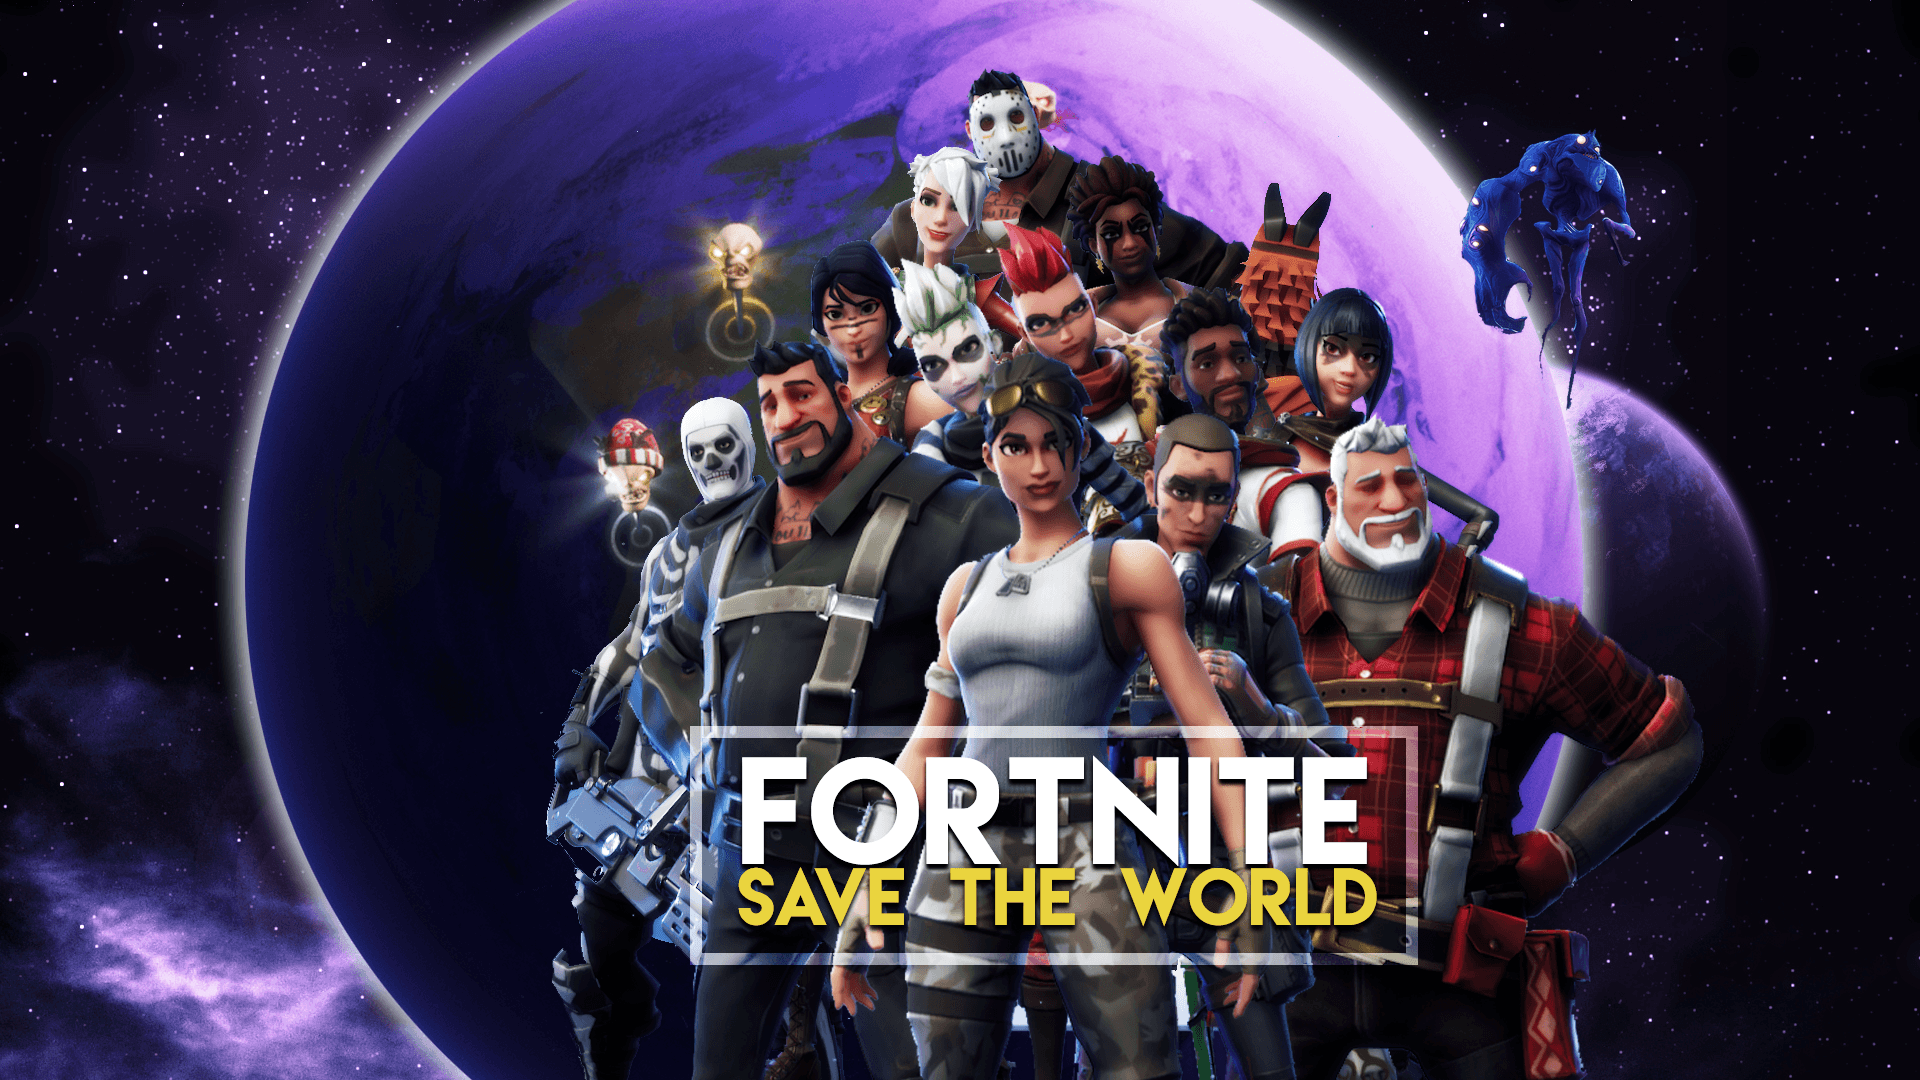 Image result for fortnite save the world wallpaper